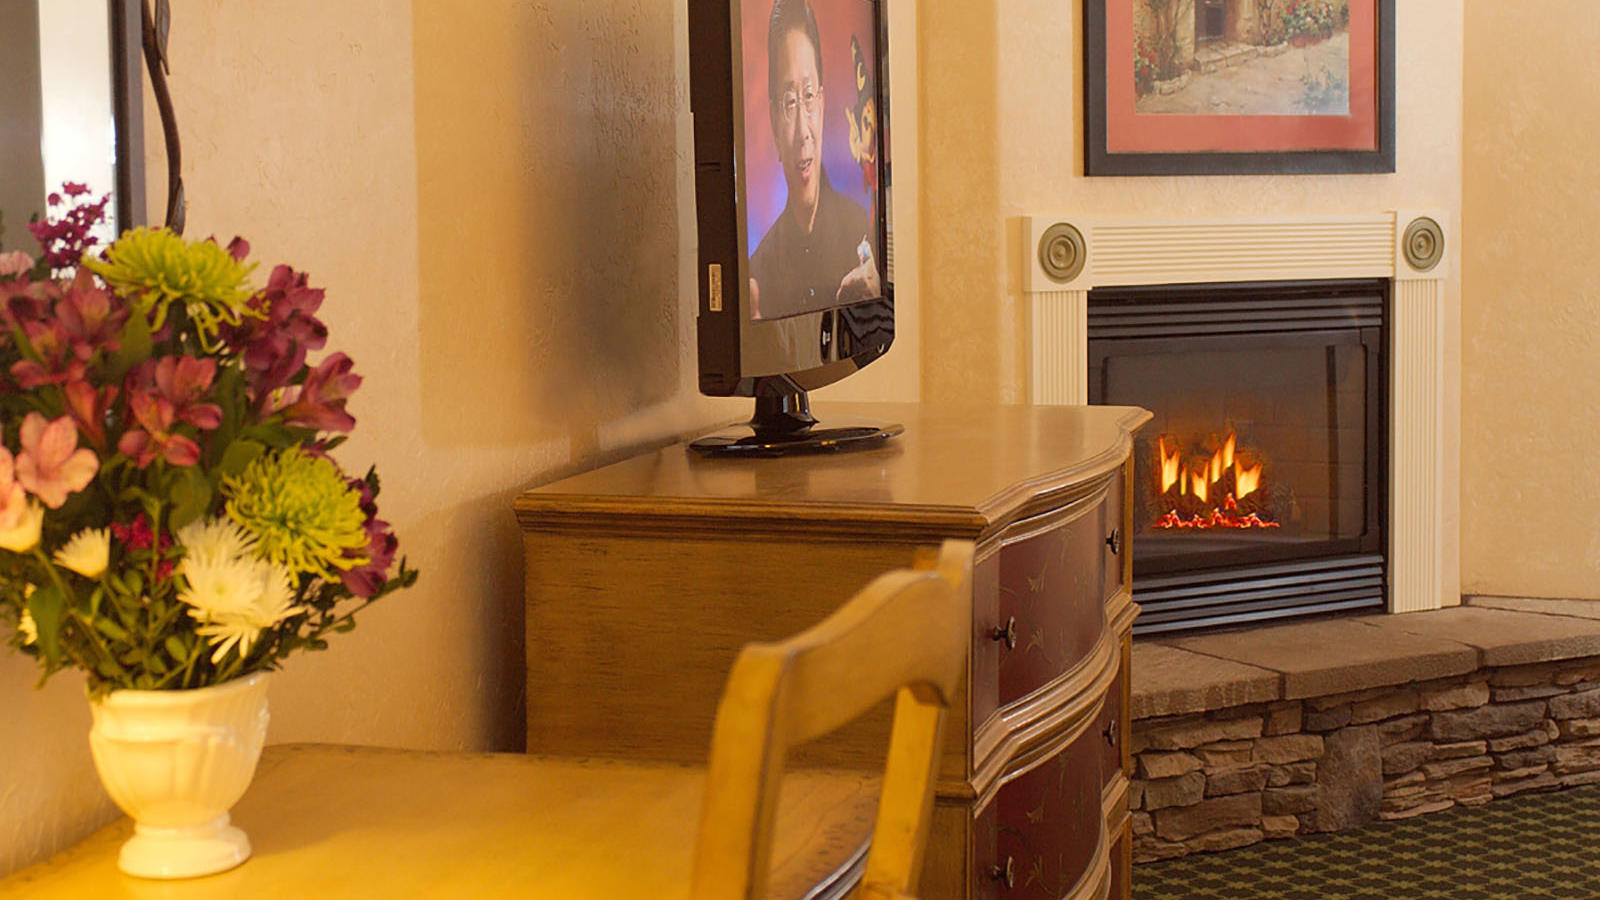 Hotel room with fireplace